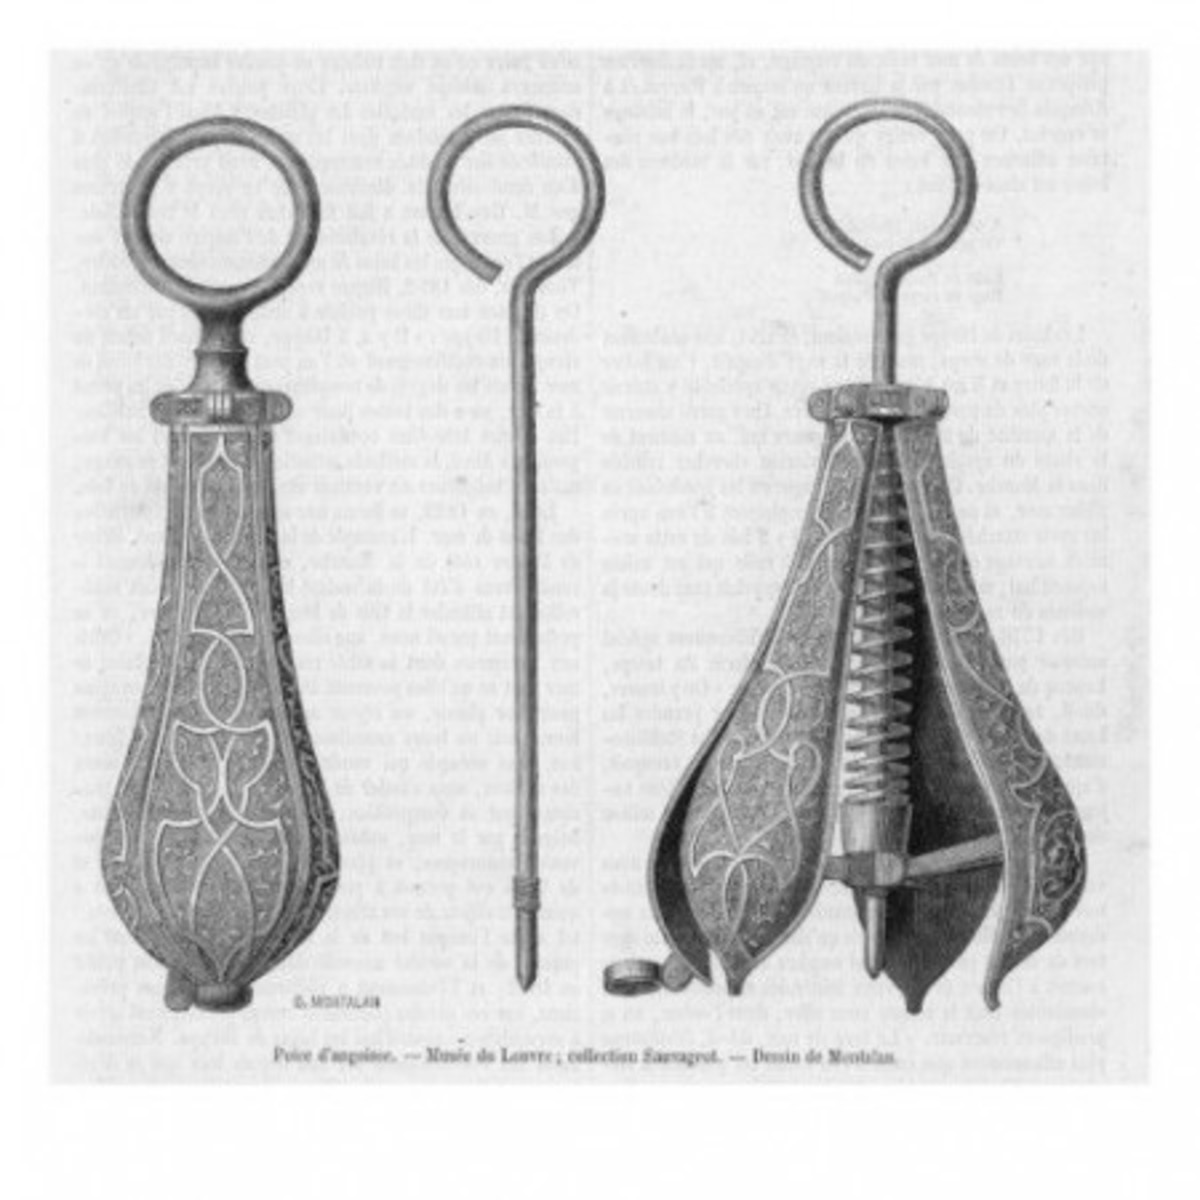 """Cockle shells"" may have been a euphemism for the Pear of Anguish, a torture device most commonly used on women, inserted into them, and opened."